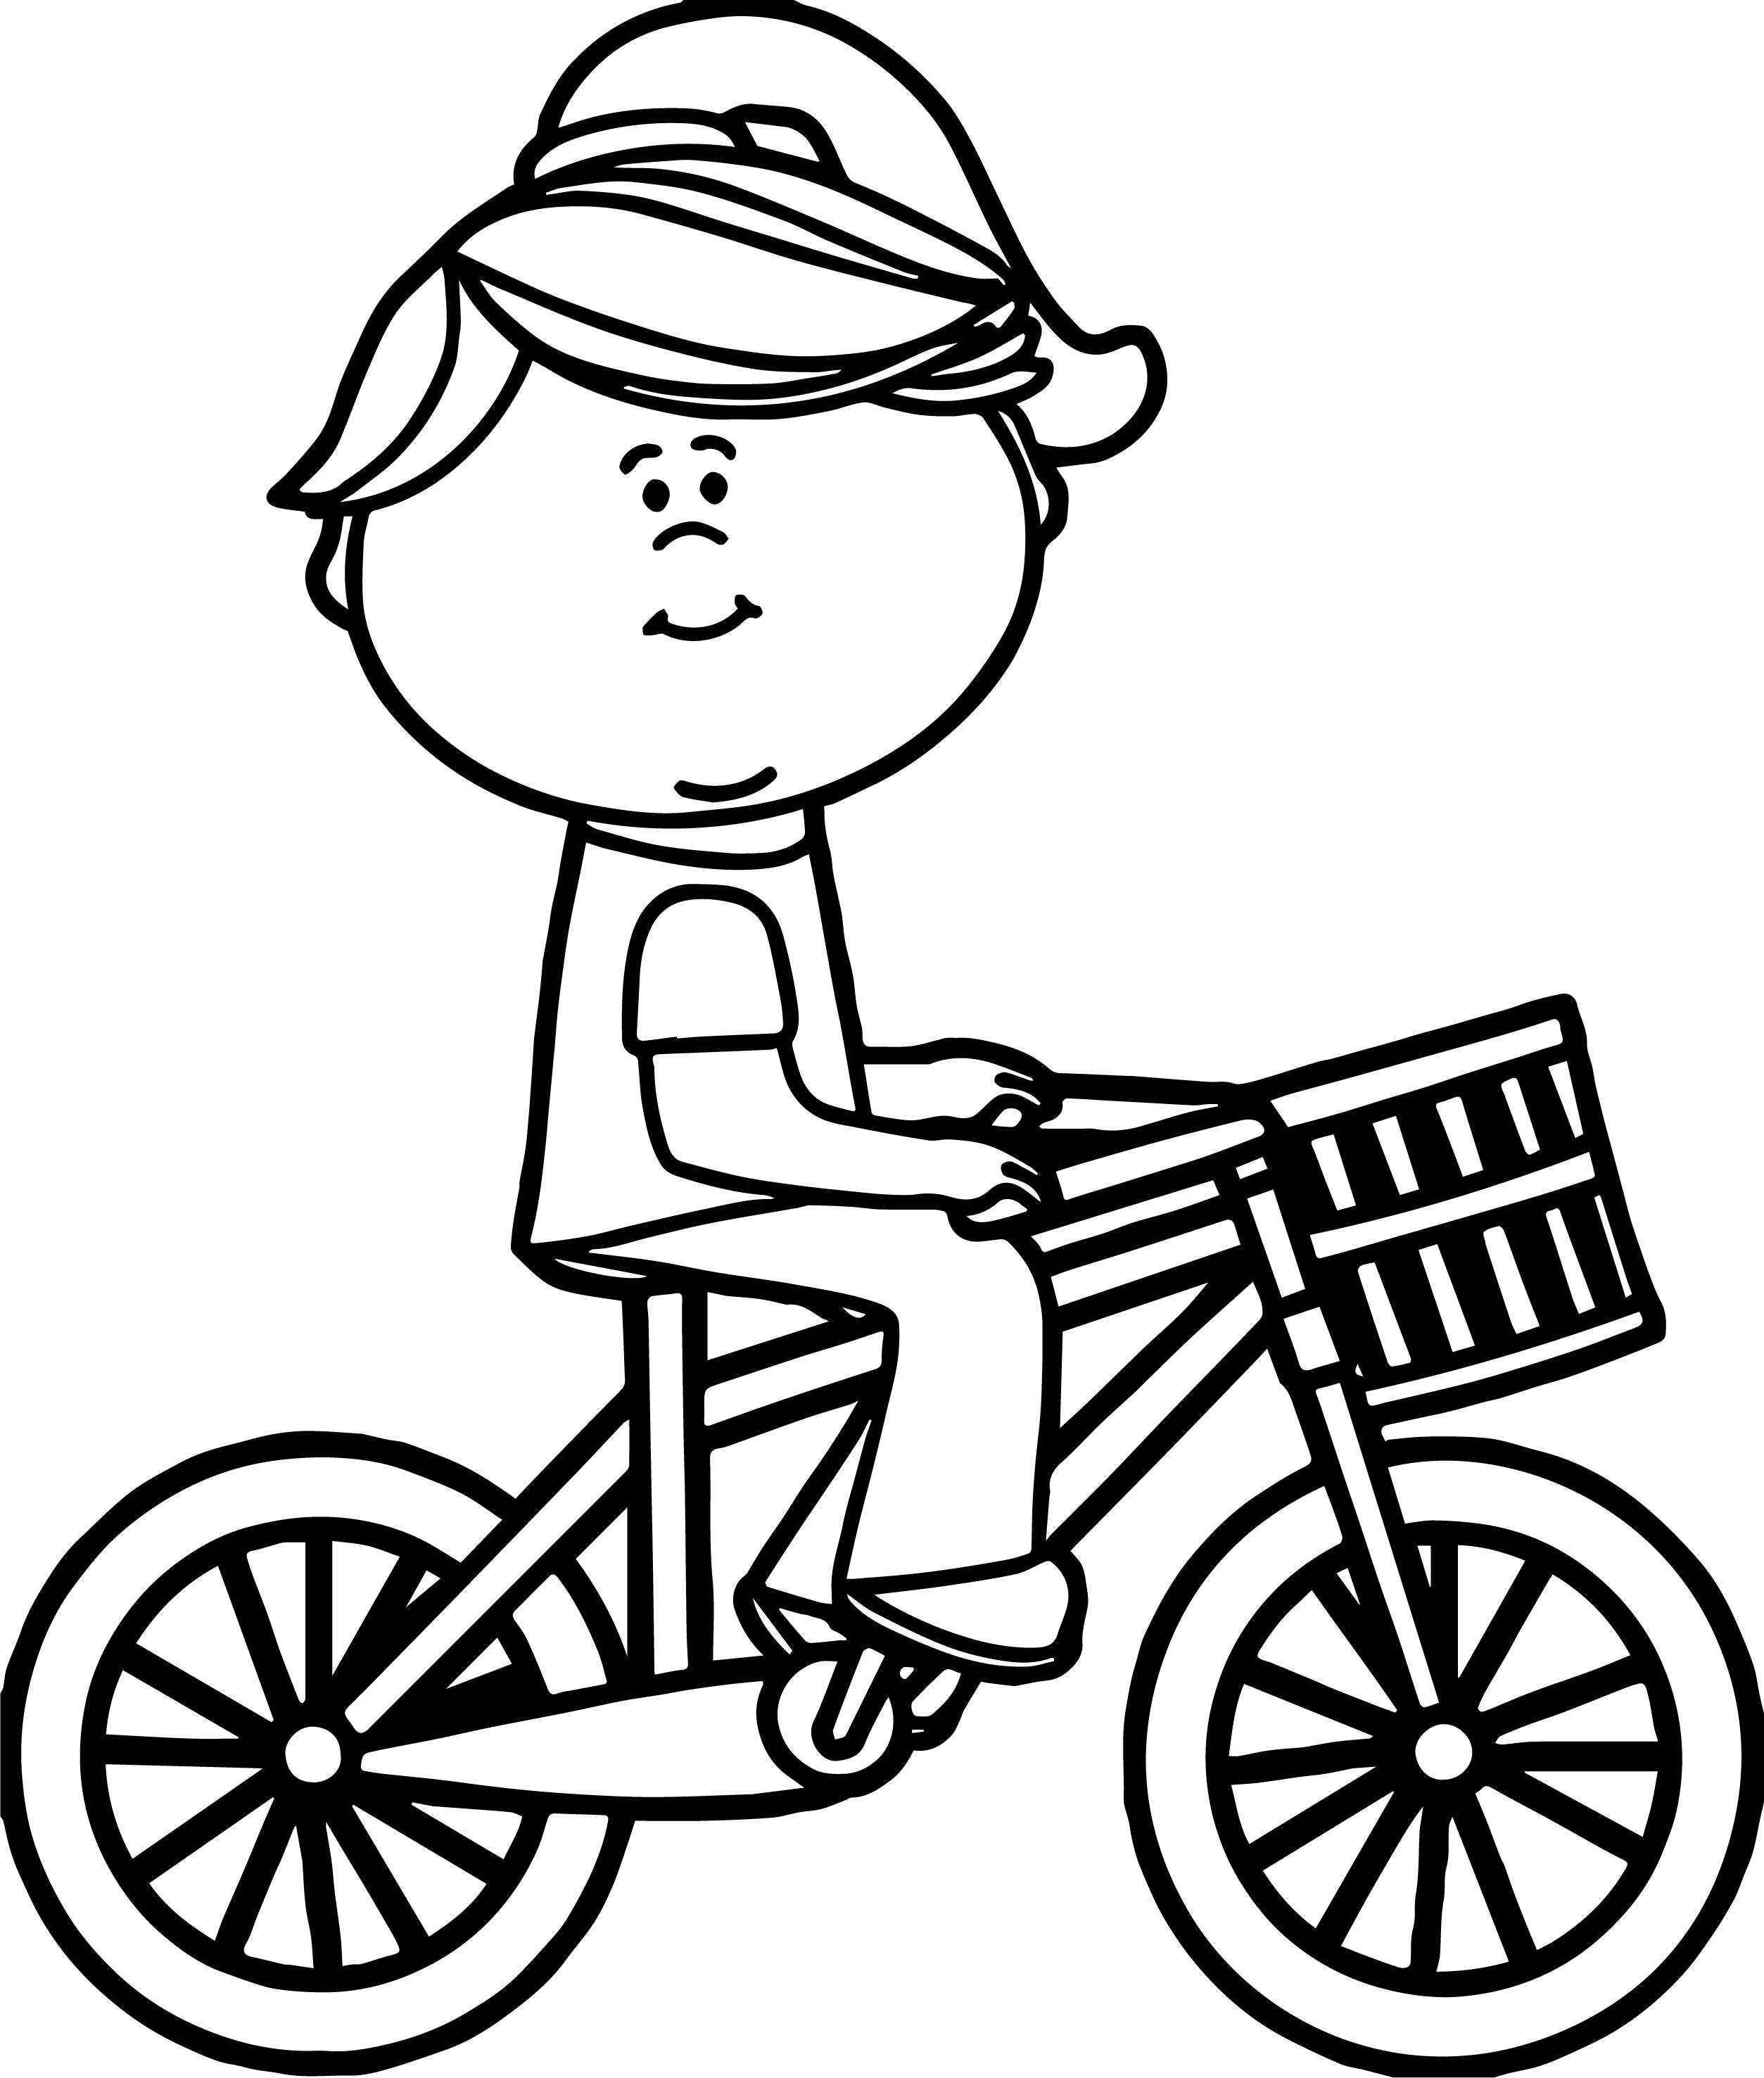 2507x2953 Coloring Pages Kids Riding Mountain Bike Page Bicycle Inside